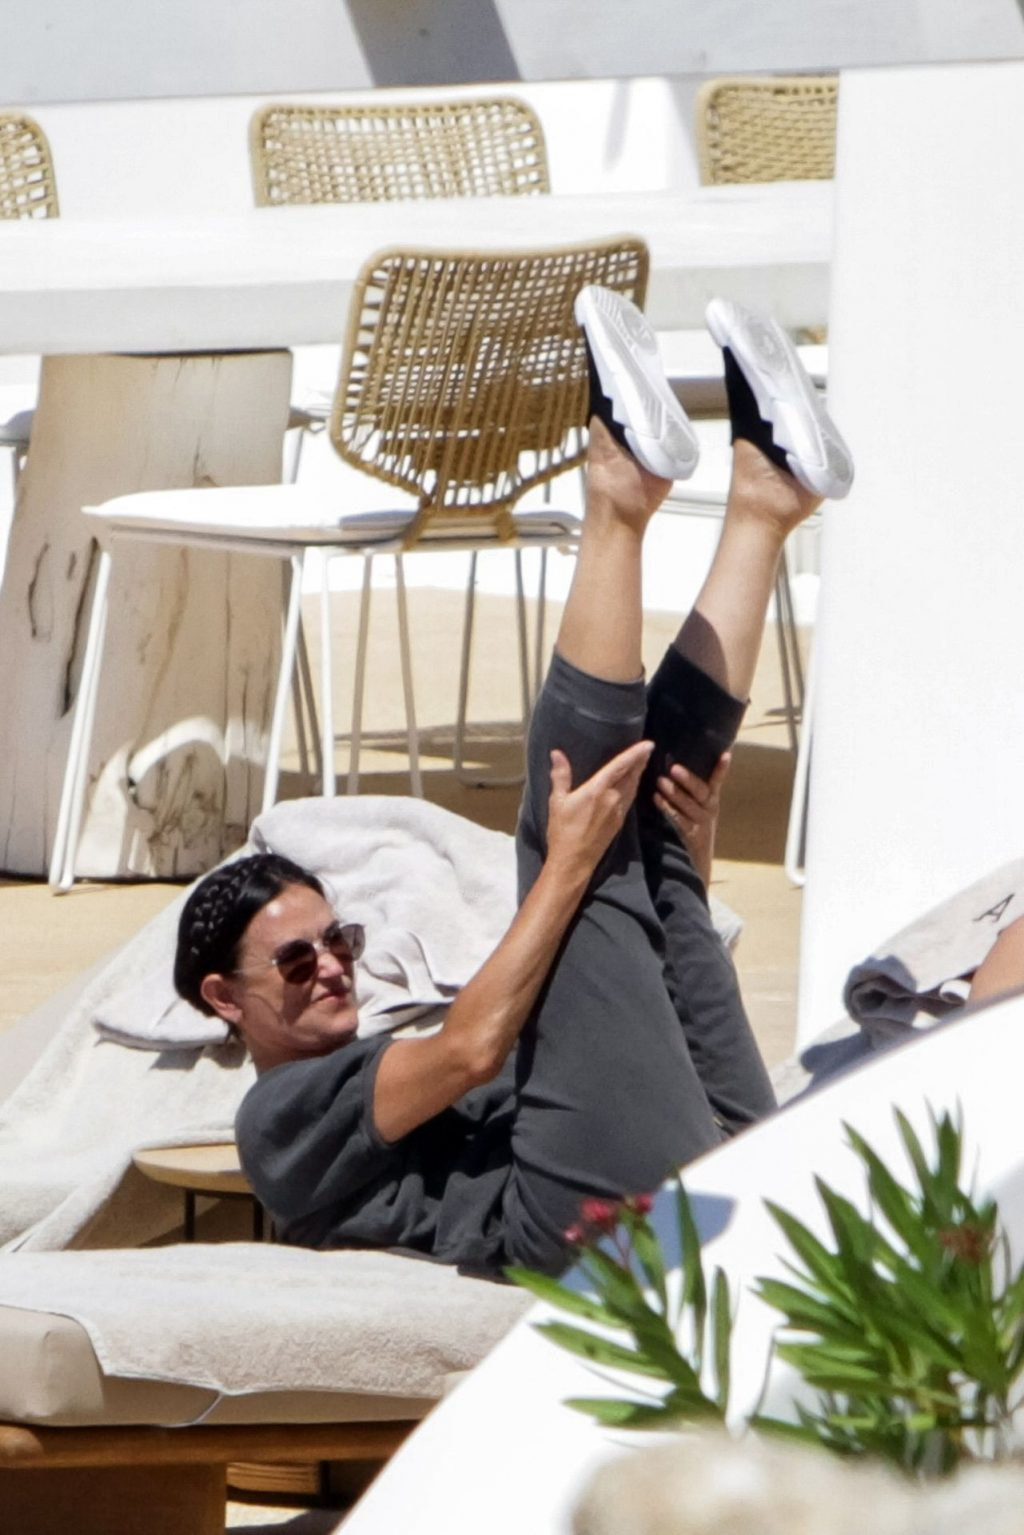 Demi Moore Goes Through a Rigorous Stretching Routine on Holiday with Rumer Willis (28 Photos)